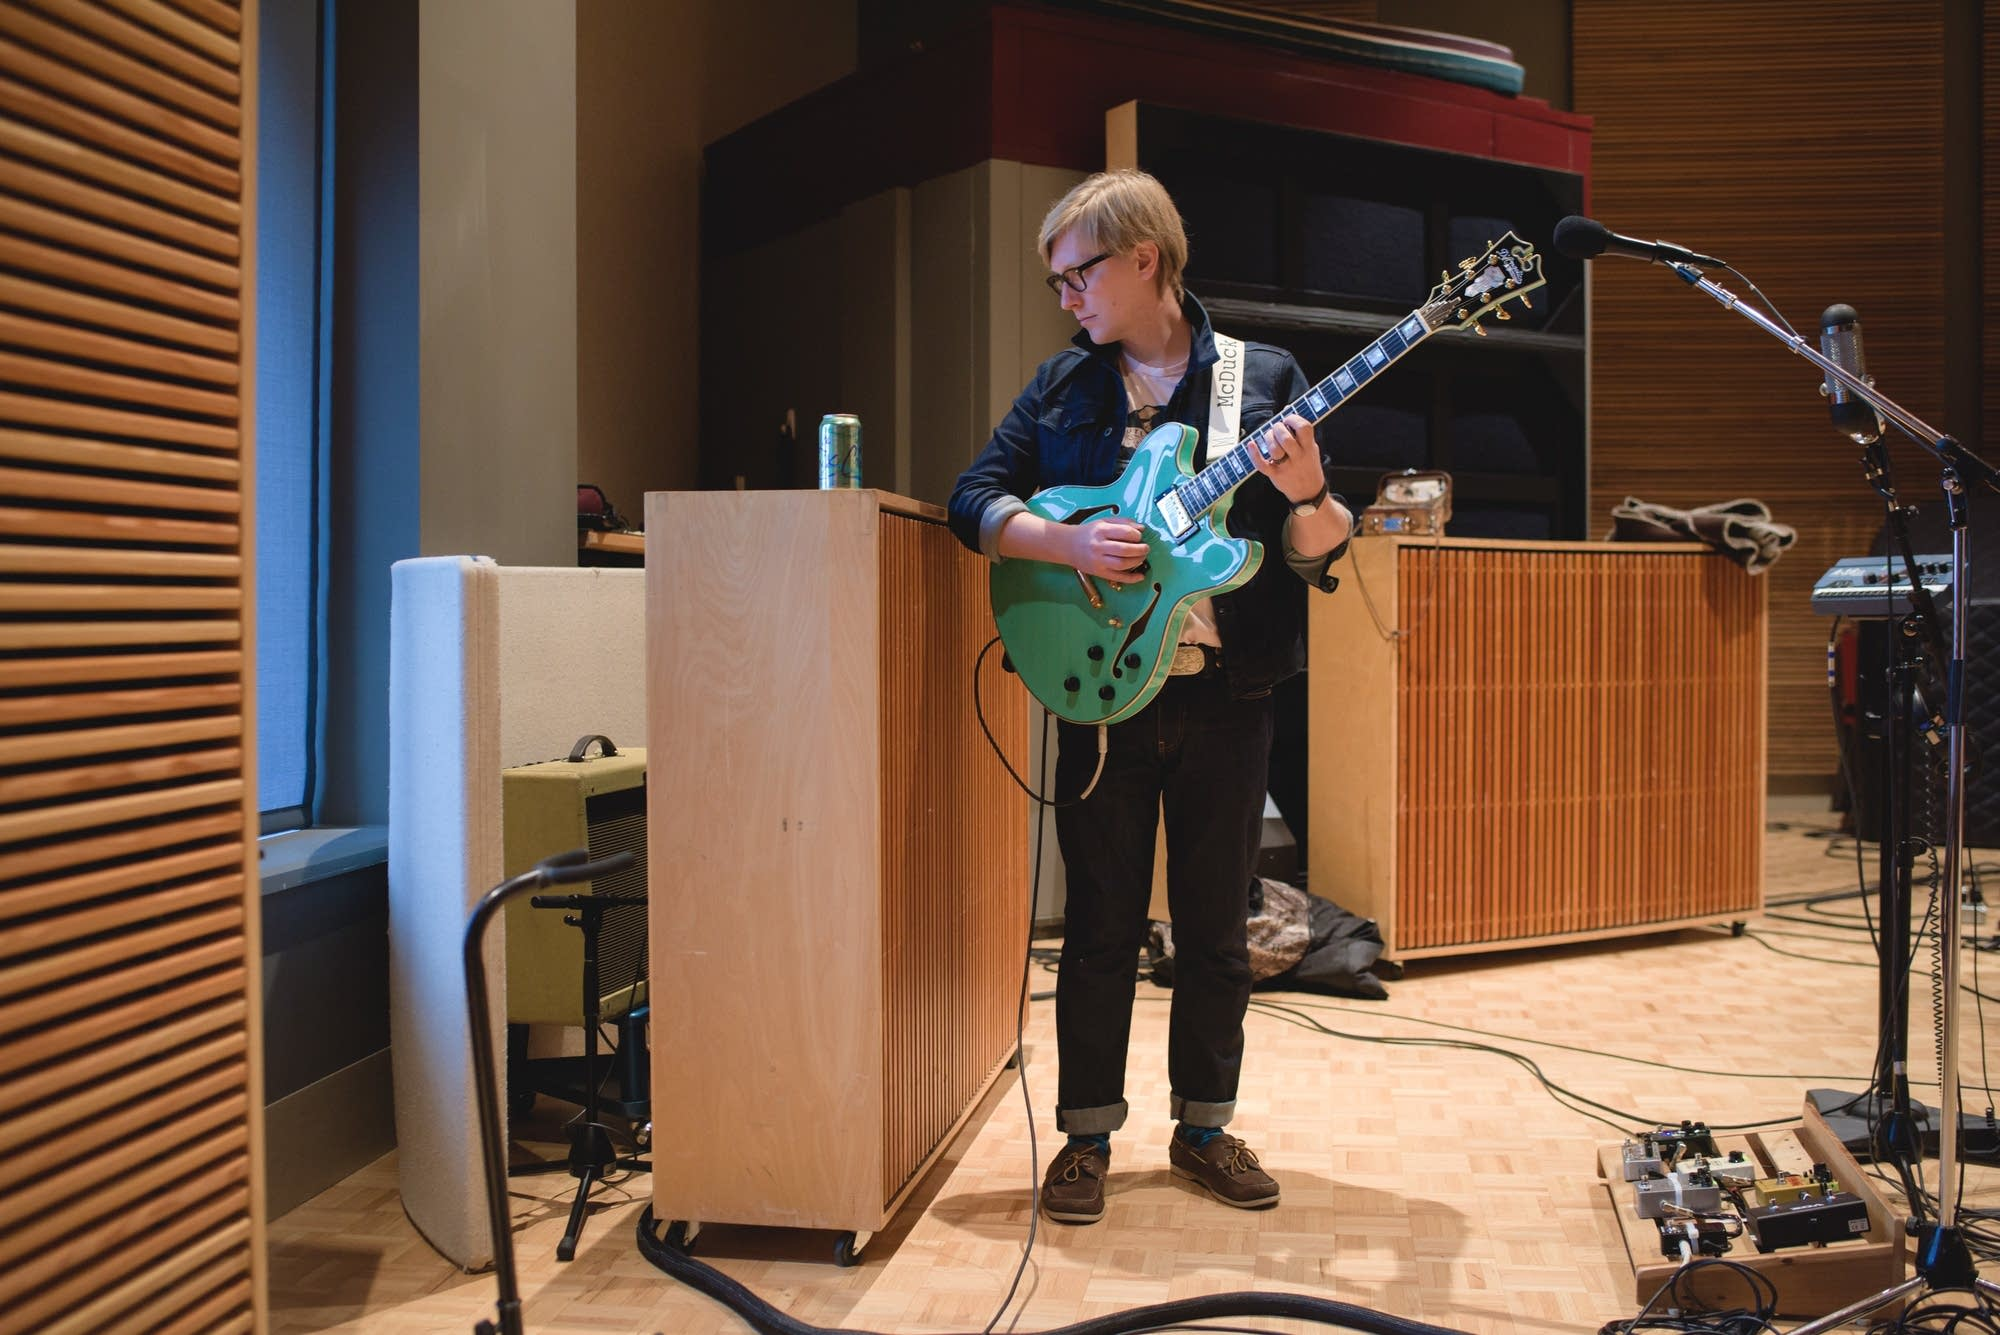 Mike McDuck Olson and his D'Angelico guitar